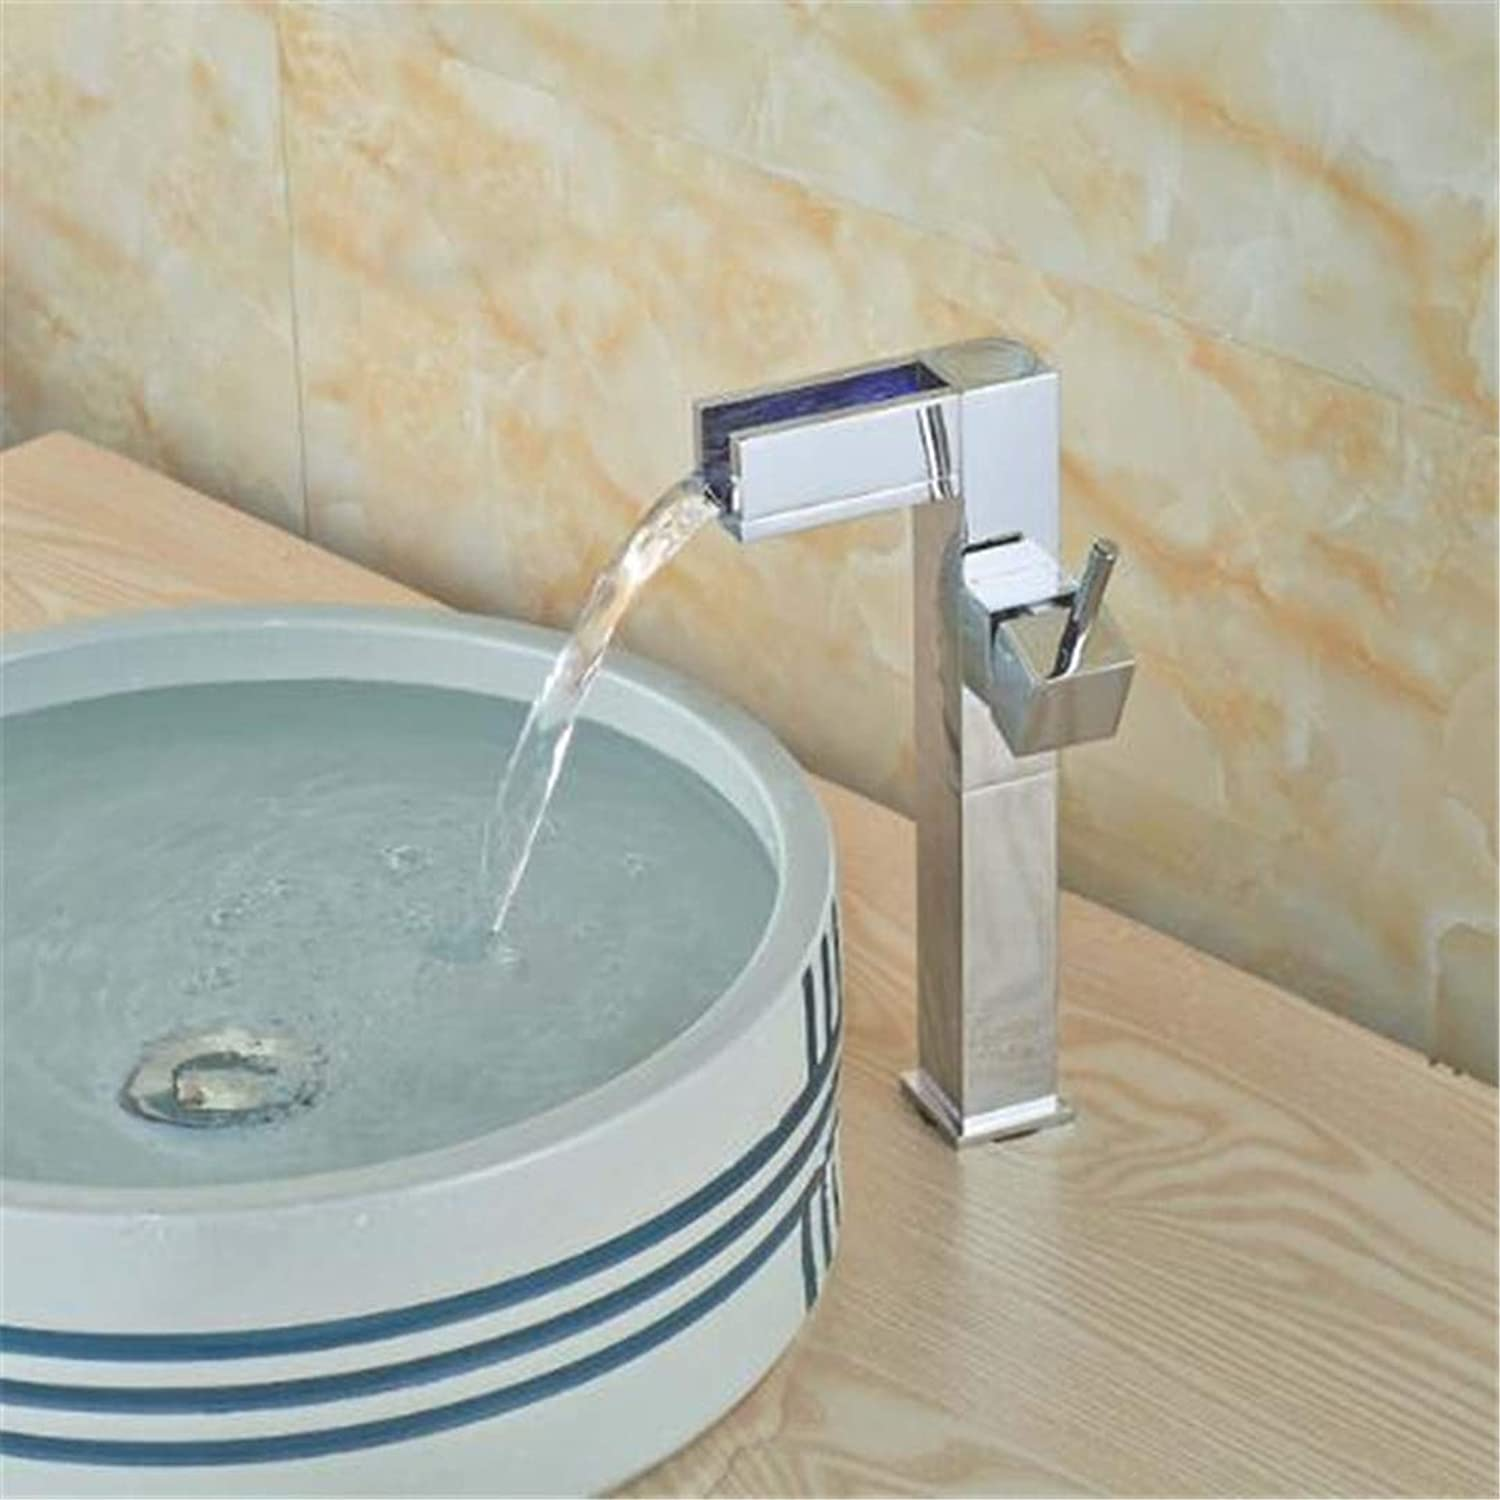 Bathroom Basin Faucet Kitchen Faucet Hot and Cold Taps Crossled Tall Style Chrome Brass Waterfall Bathroom Faucet Tall Vanity Sink Mixer Tap